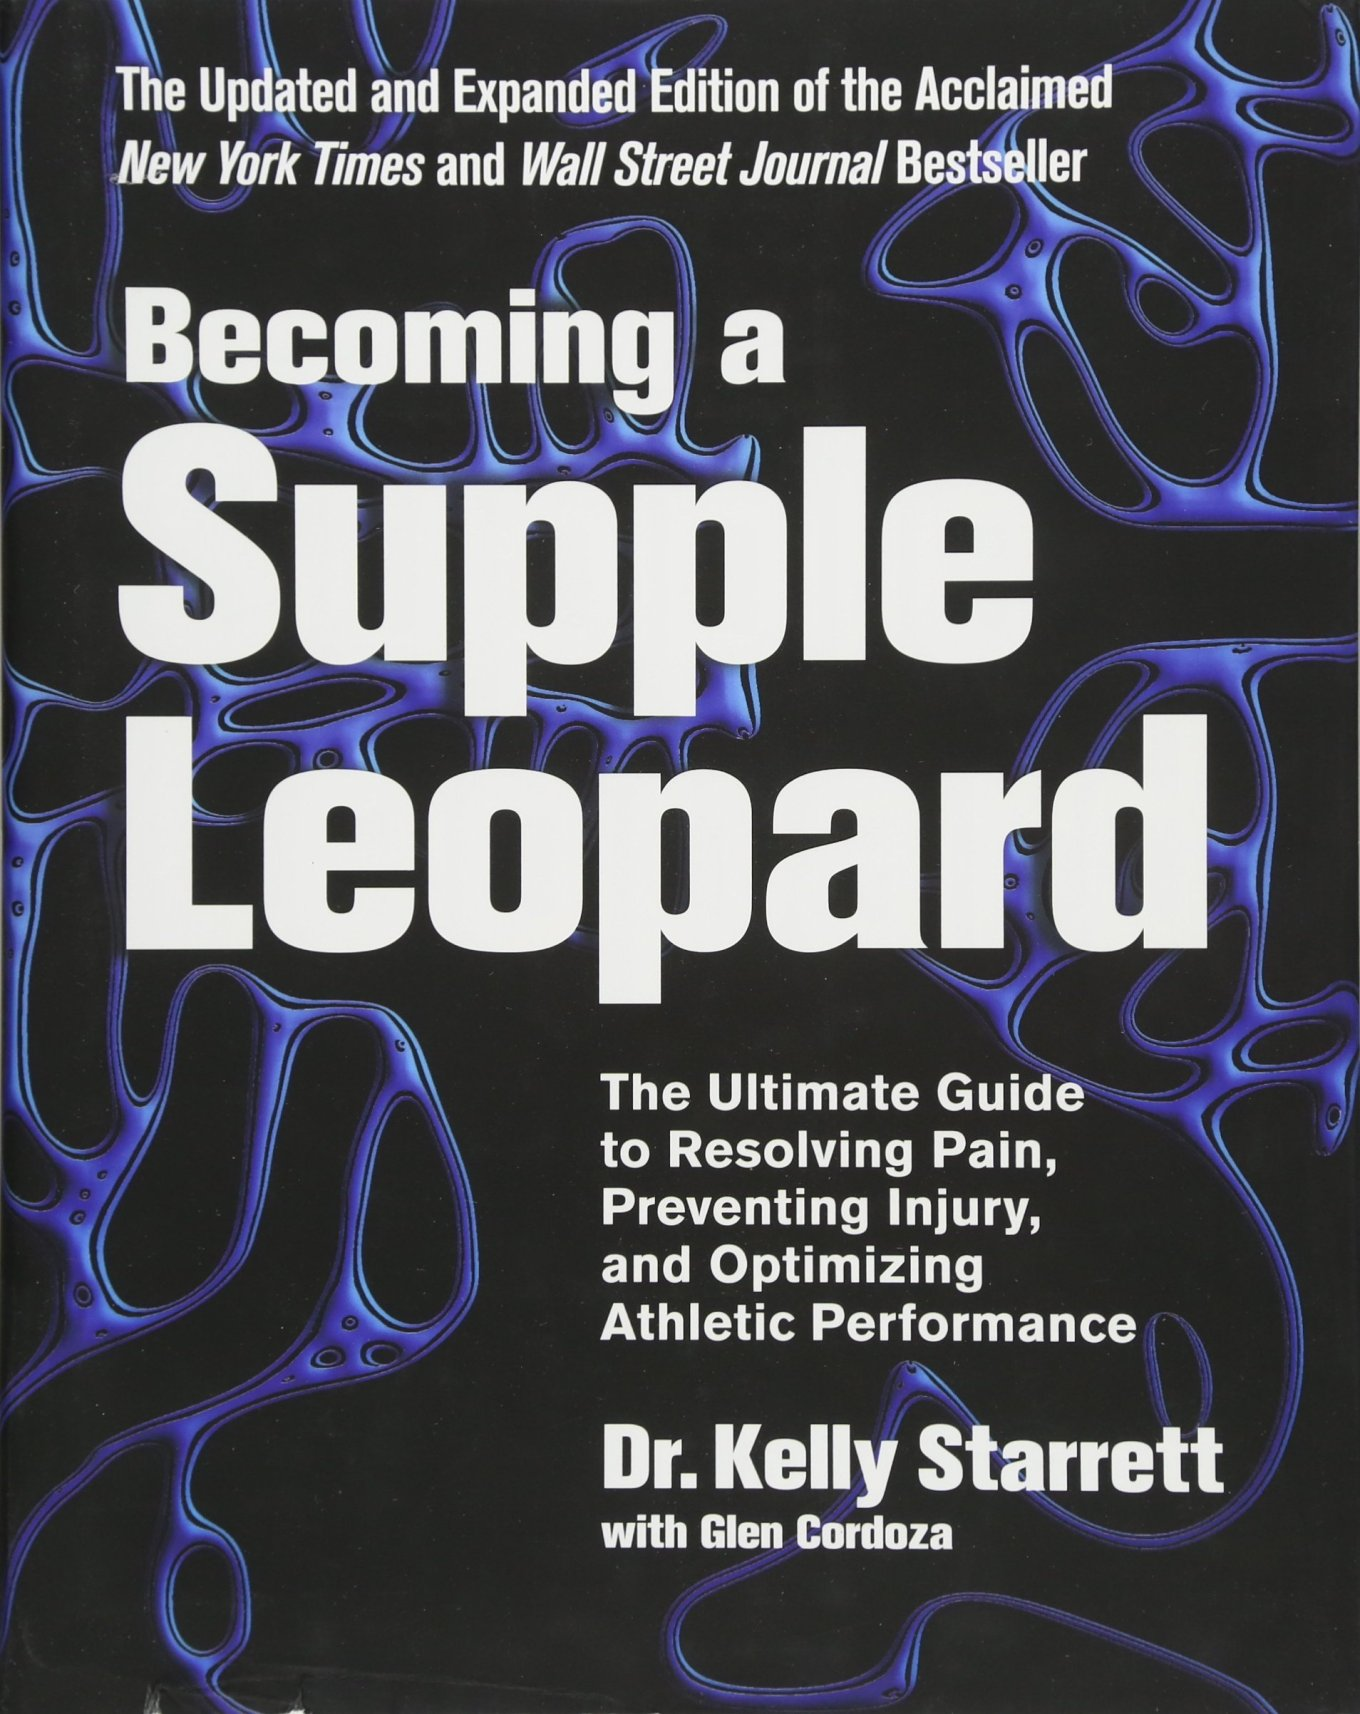 Becoming a Supple Leopard: The Ultimate Guide to Resolving Pain, Preventing  Injury, and Optimizing Athletic Performance: Amazon.co.uk: Dr Kelly  Starrett, Glen Cordoza: 9781628600834: Books